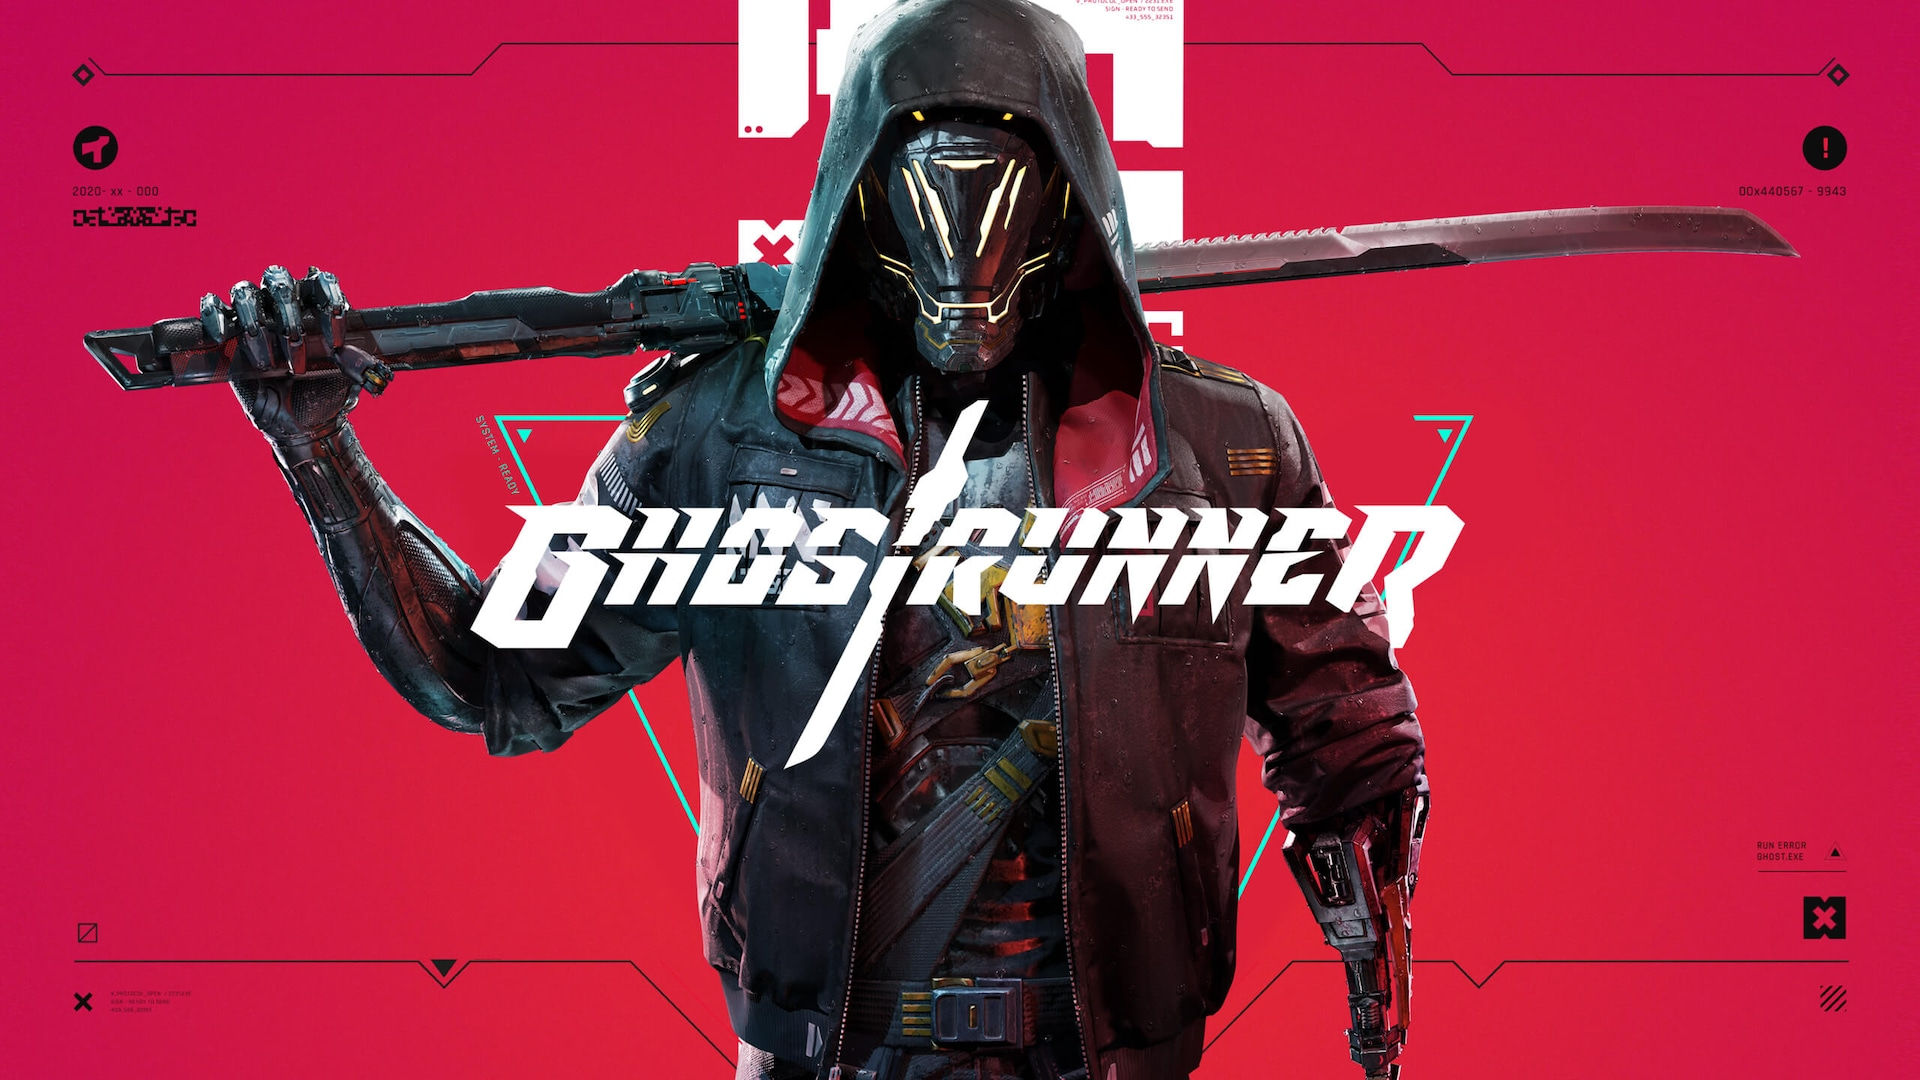 GhostRunner on the Epic Games Store